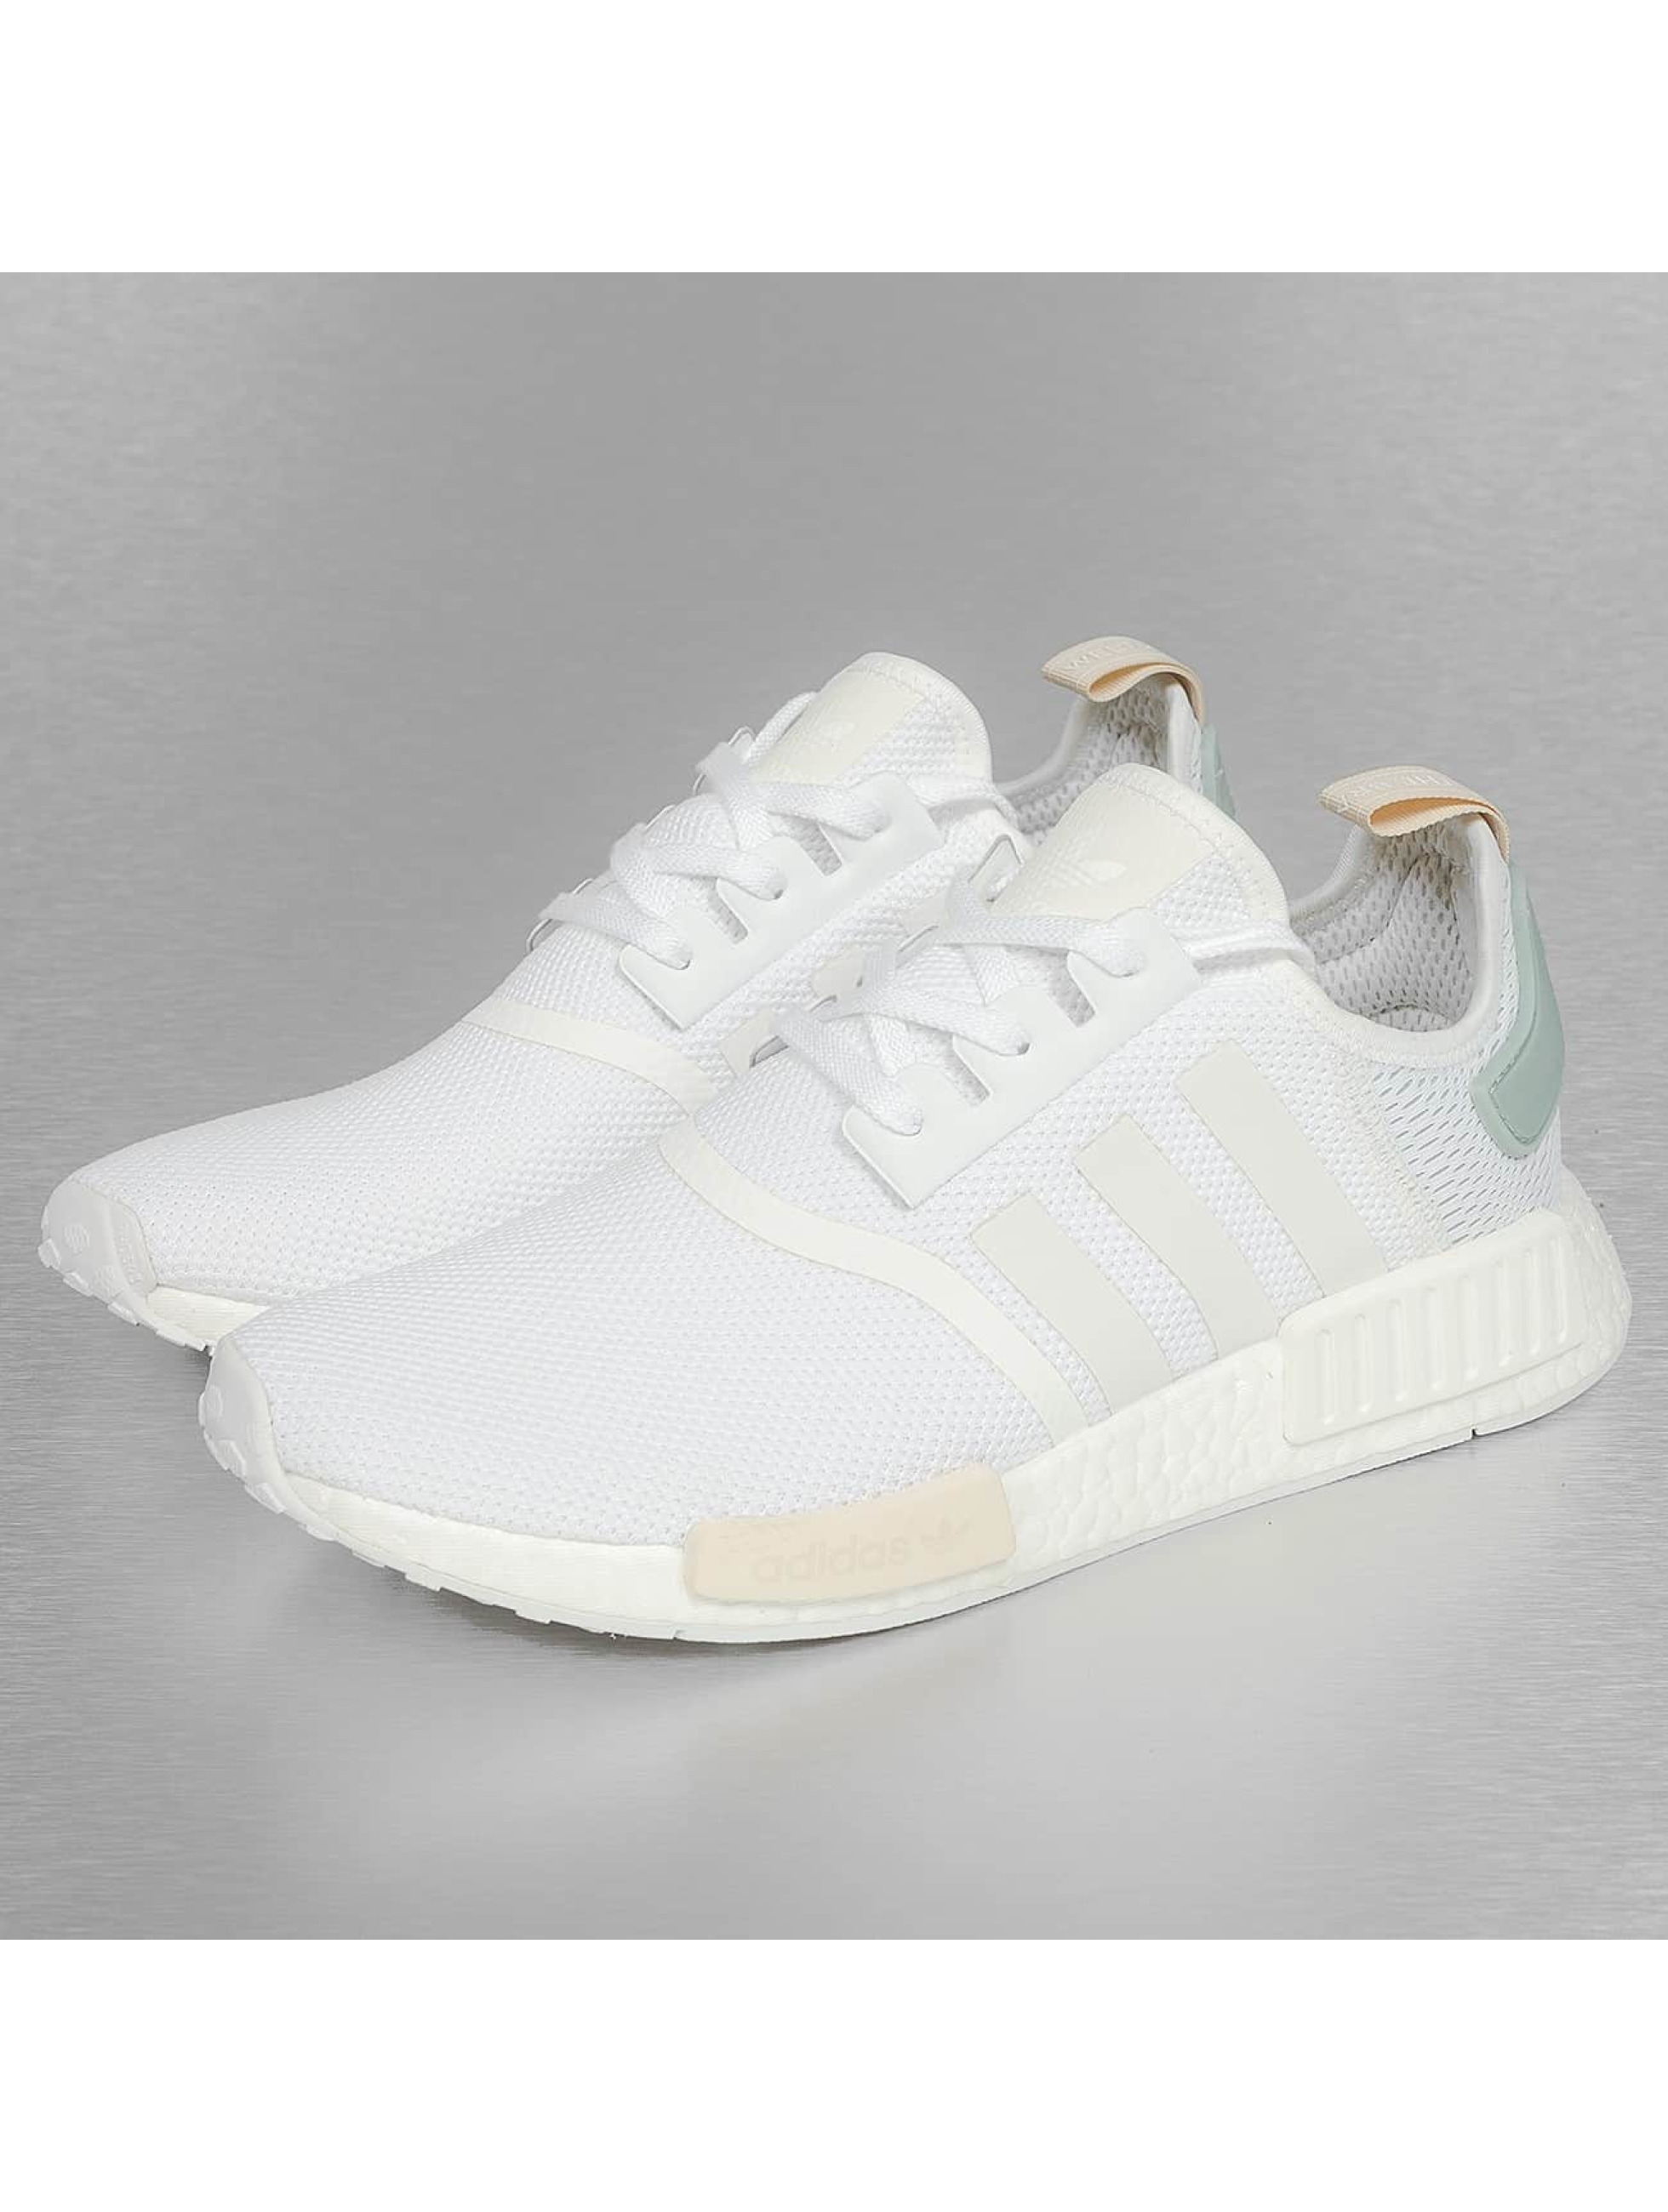 adidas sneaker nmd r1 w in wei 302696. Black Bedroom Furniture Sets. Home Design Ideas